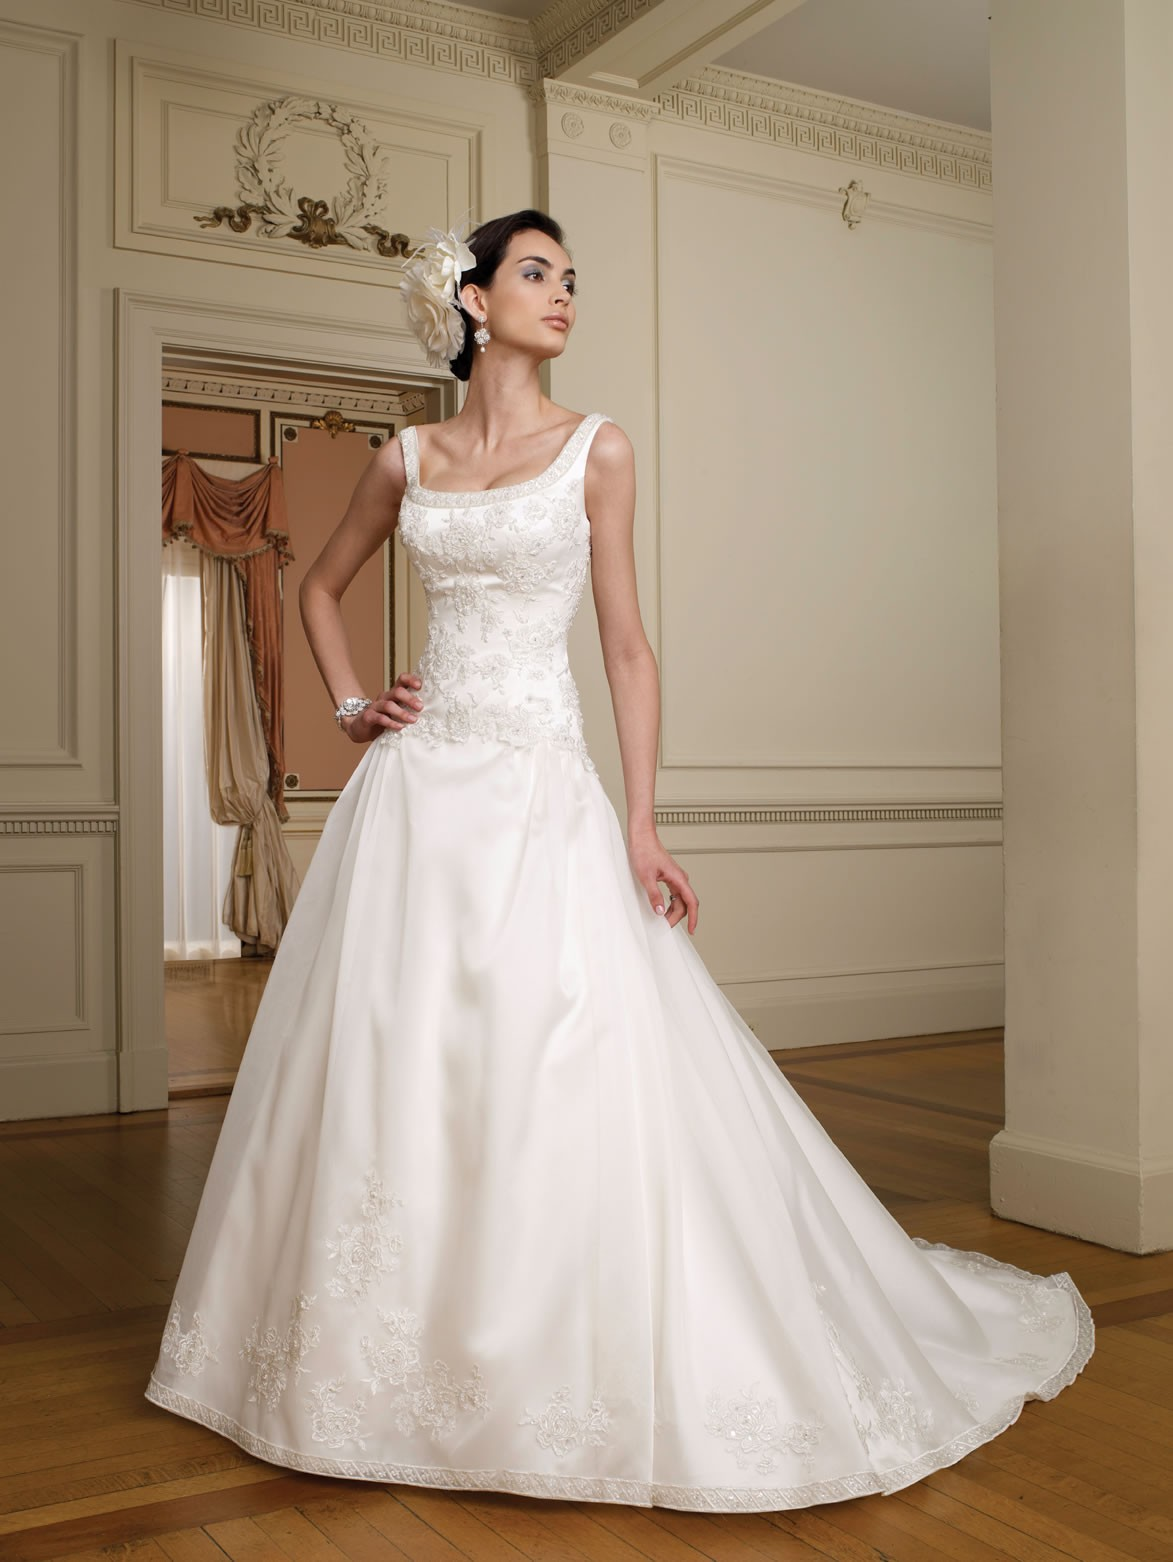 : short pnina tornai wedding dress